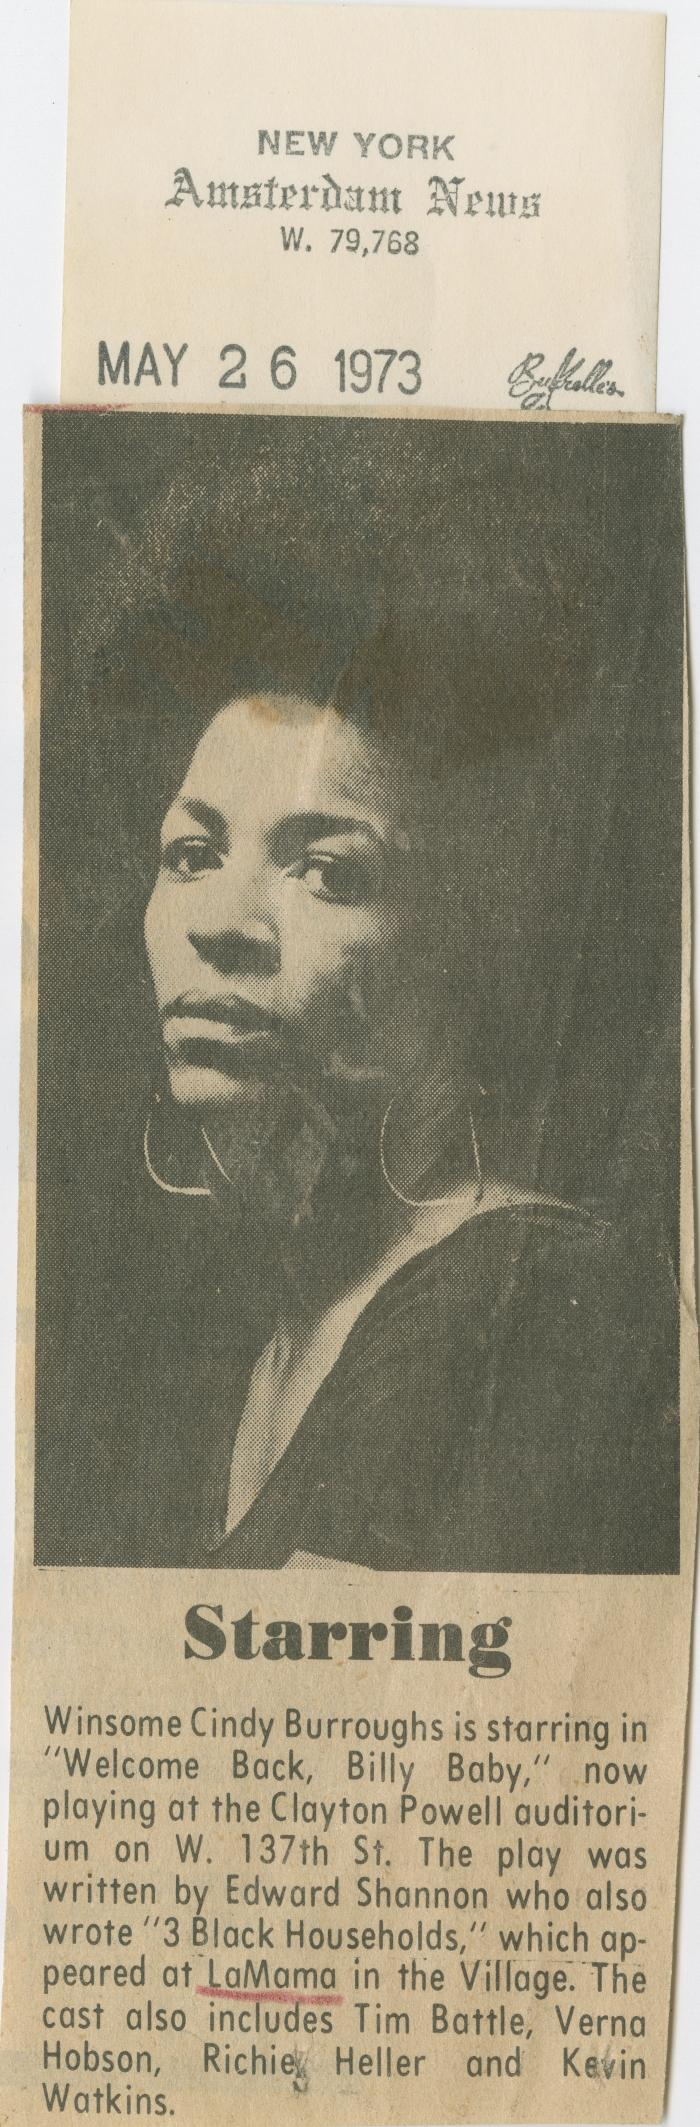 """Clipping: """"Starring"""" (1973)"""